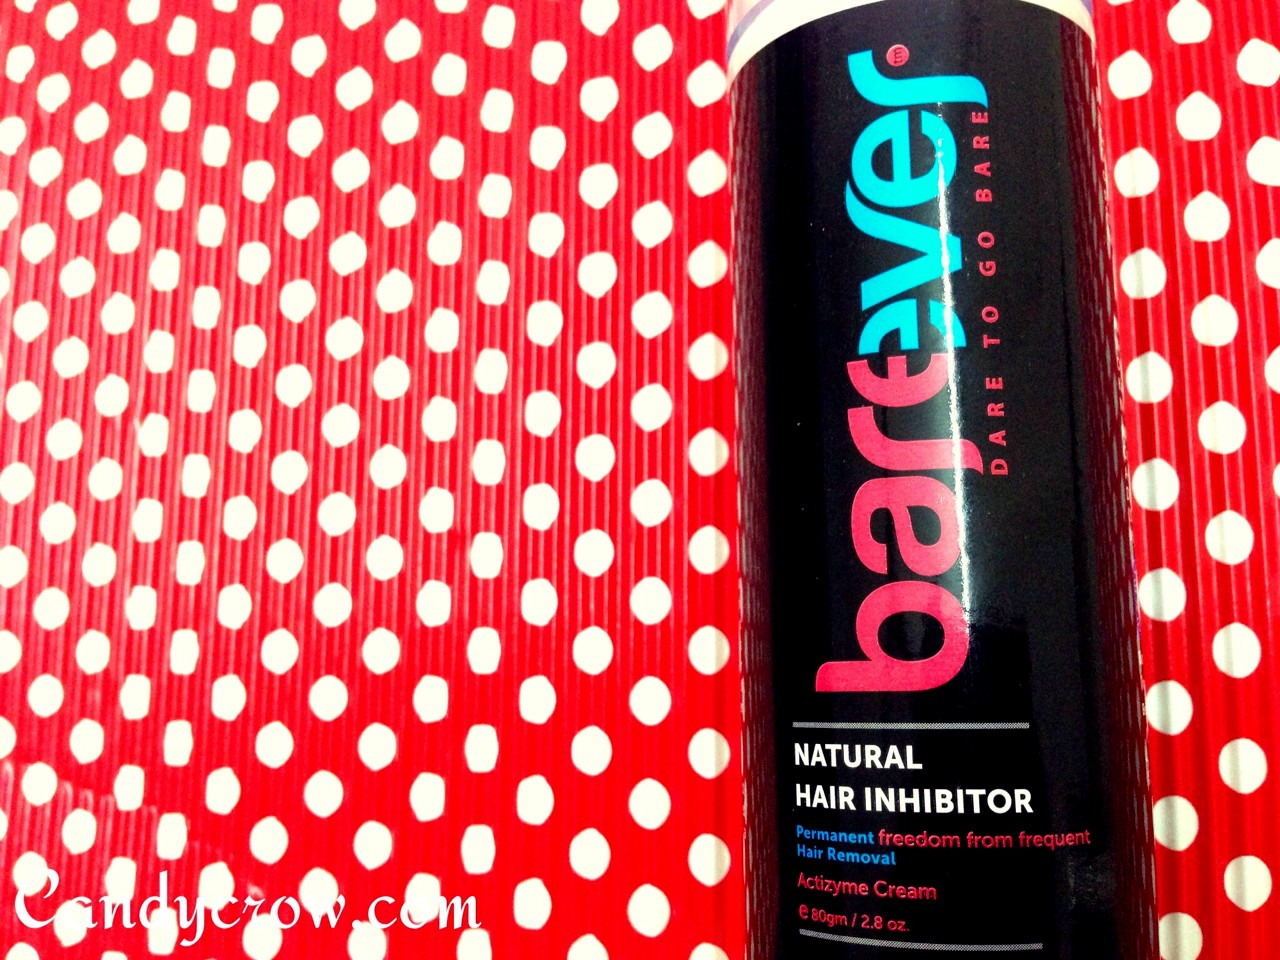 Barever Hair Inhibitor Review, permanent hair removal